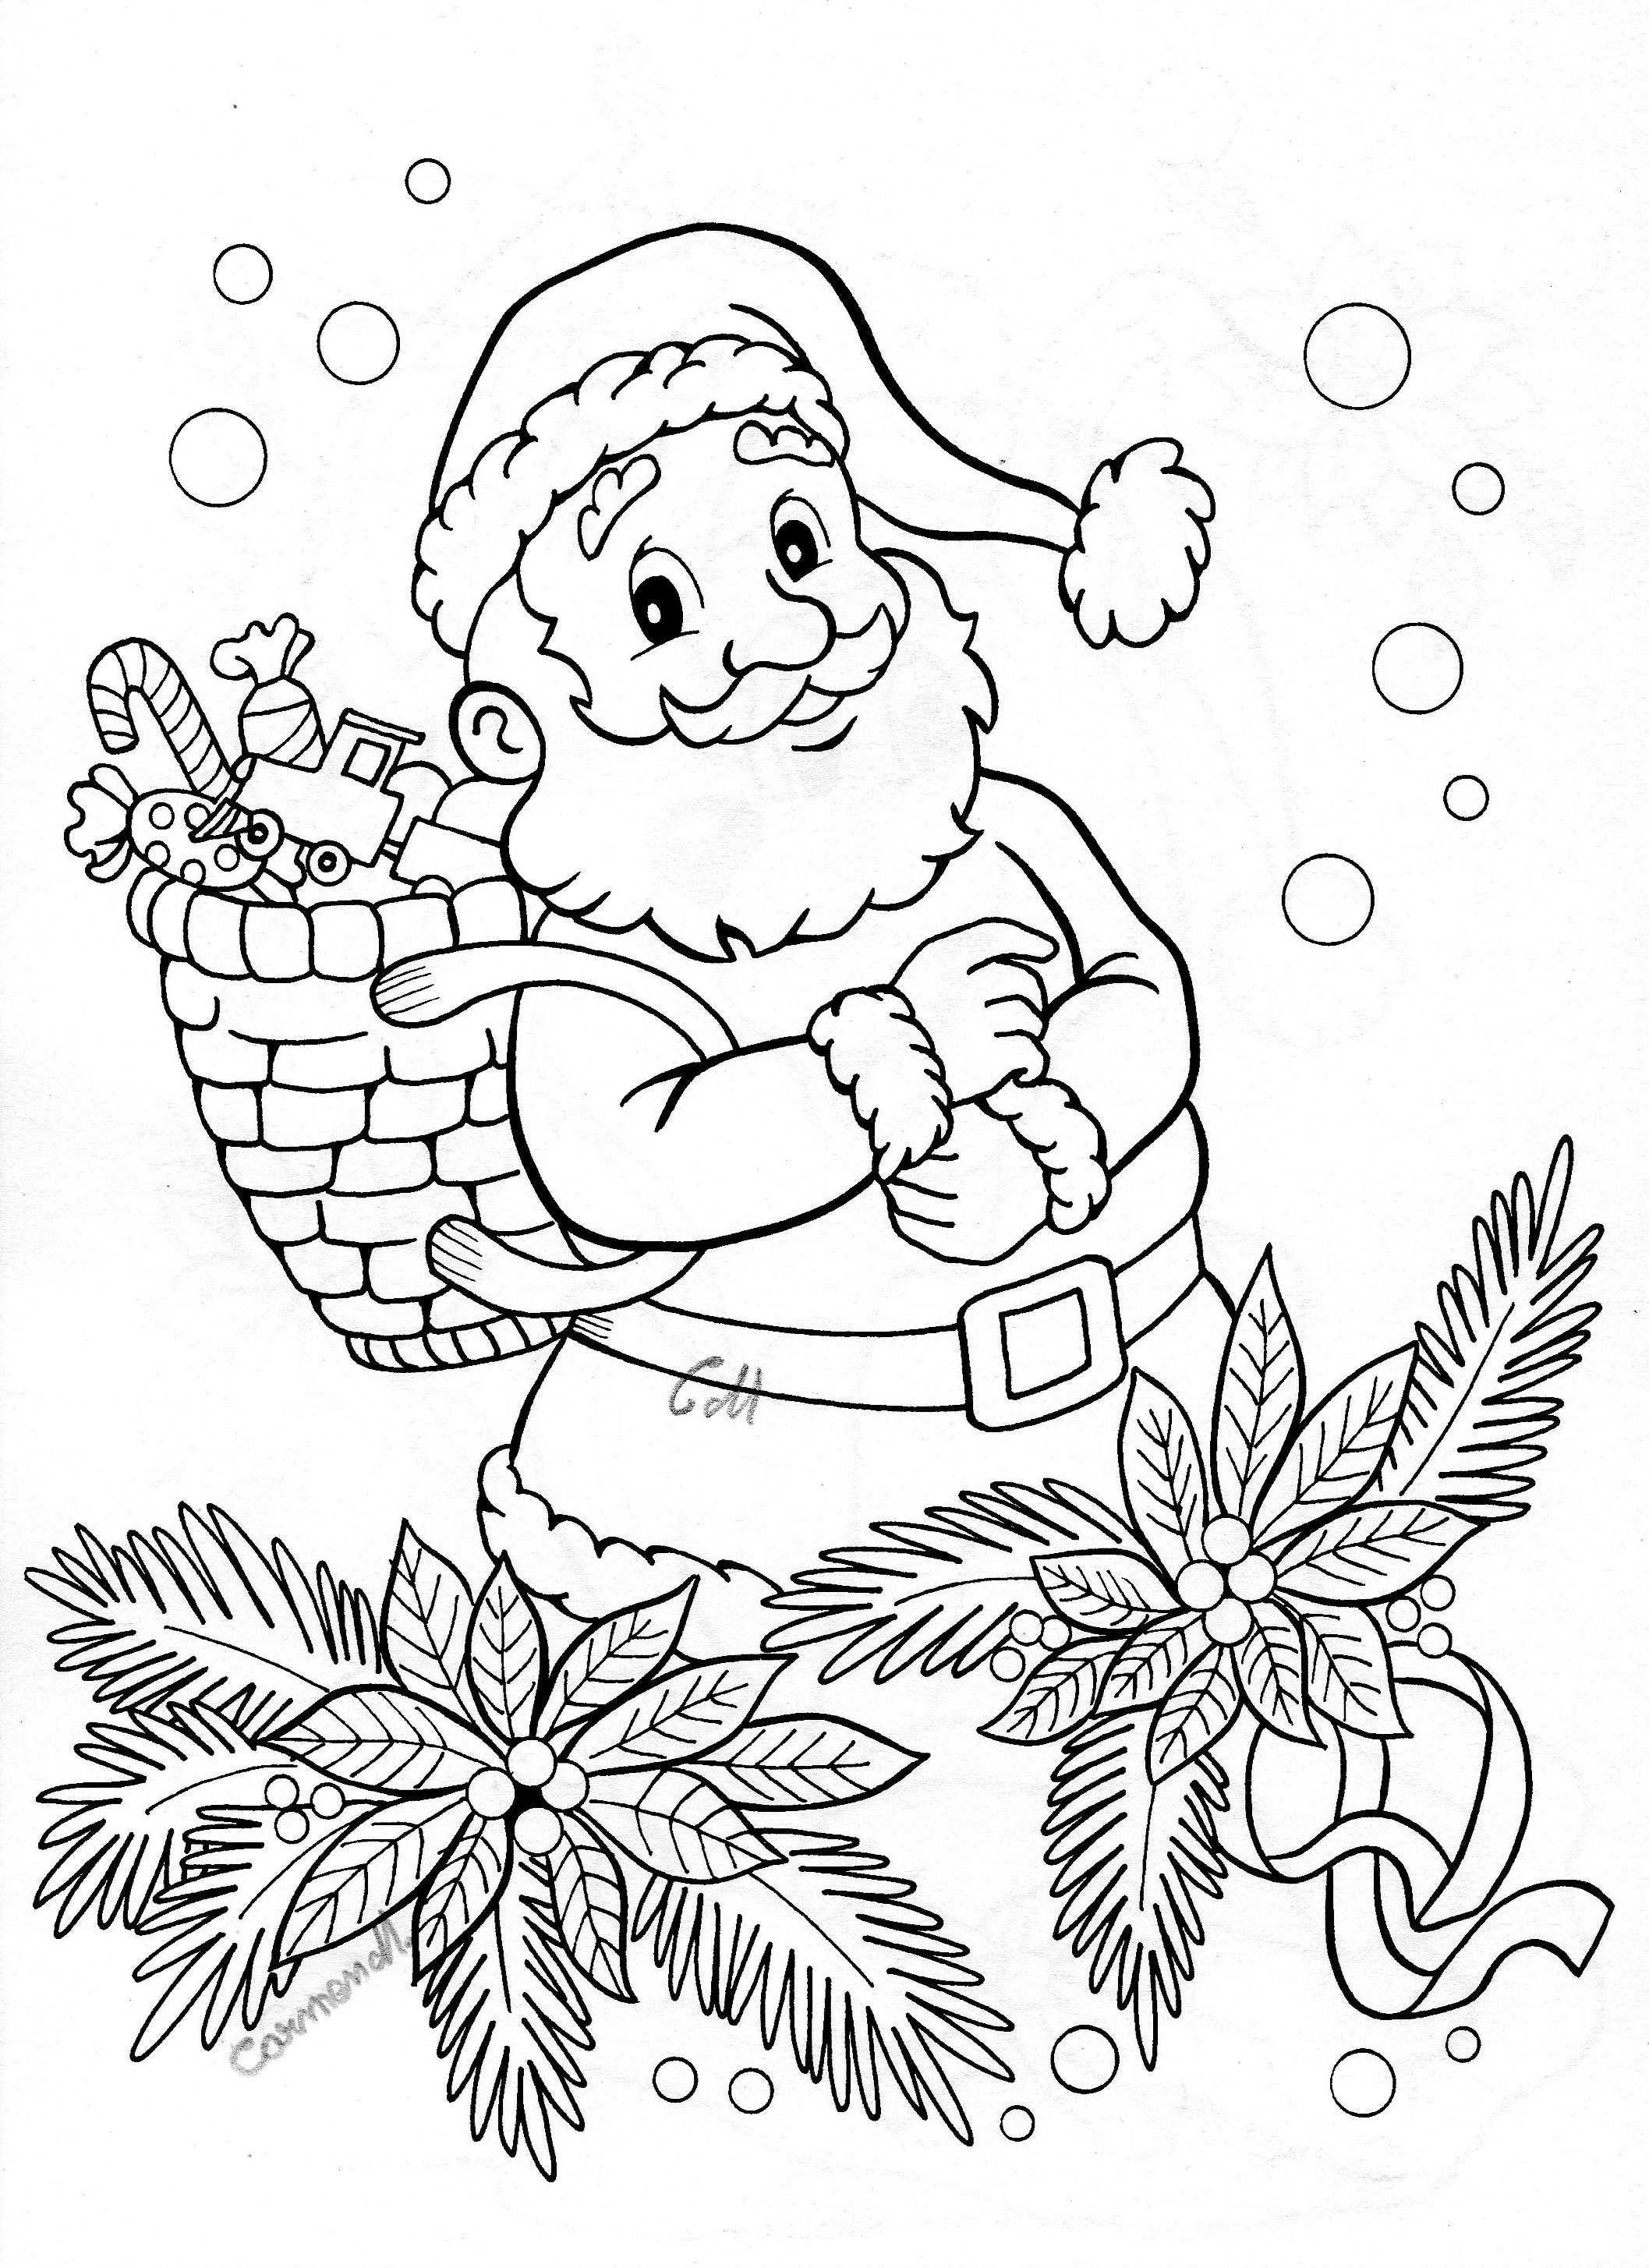 Pin By Britt Mellaart On Disegni Natale Christmas Coloring Pages Snowman Coloring Pages Christmas Tree Coloring Page